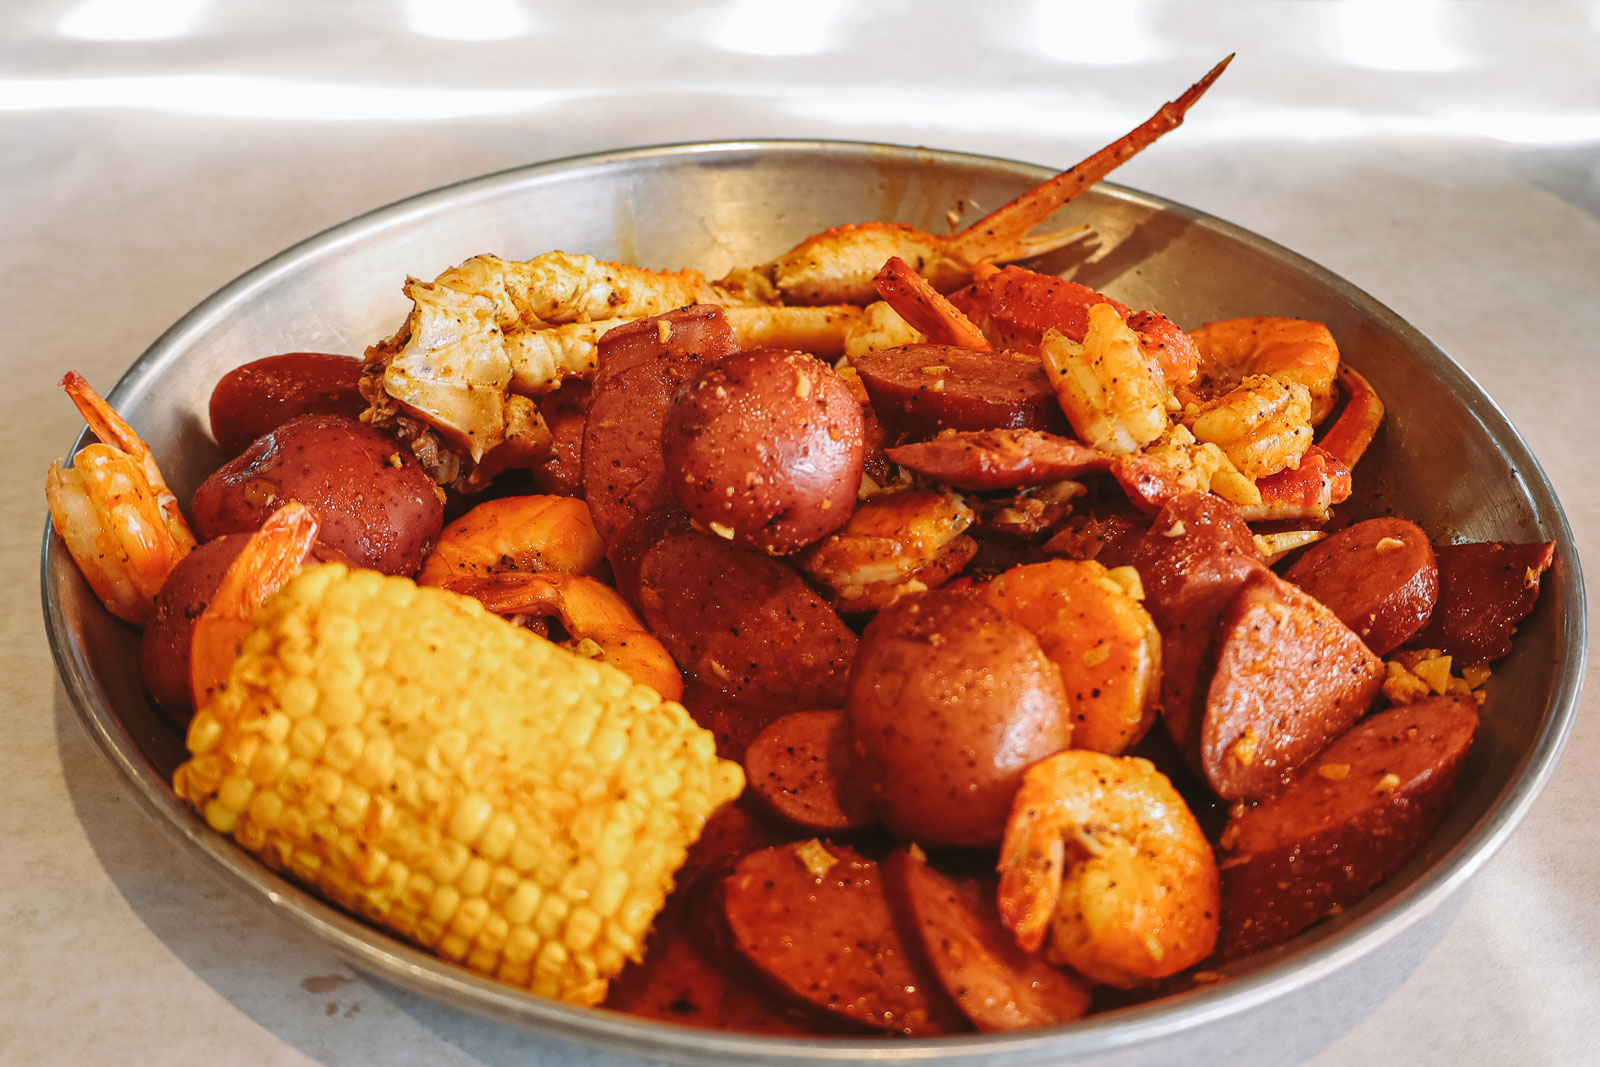 A metal bowl overflowing with a seafood boil.